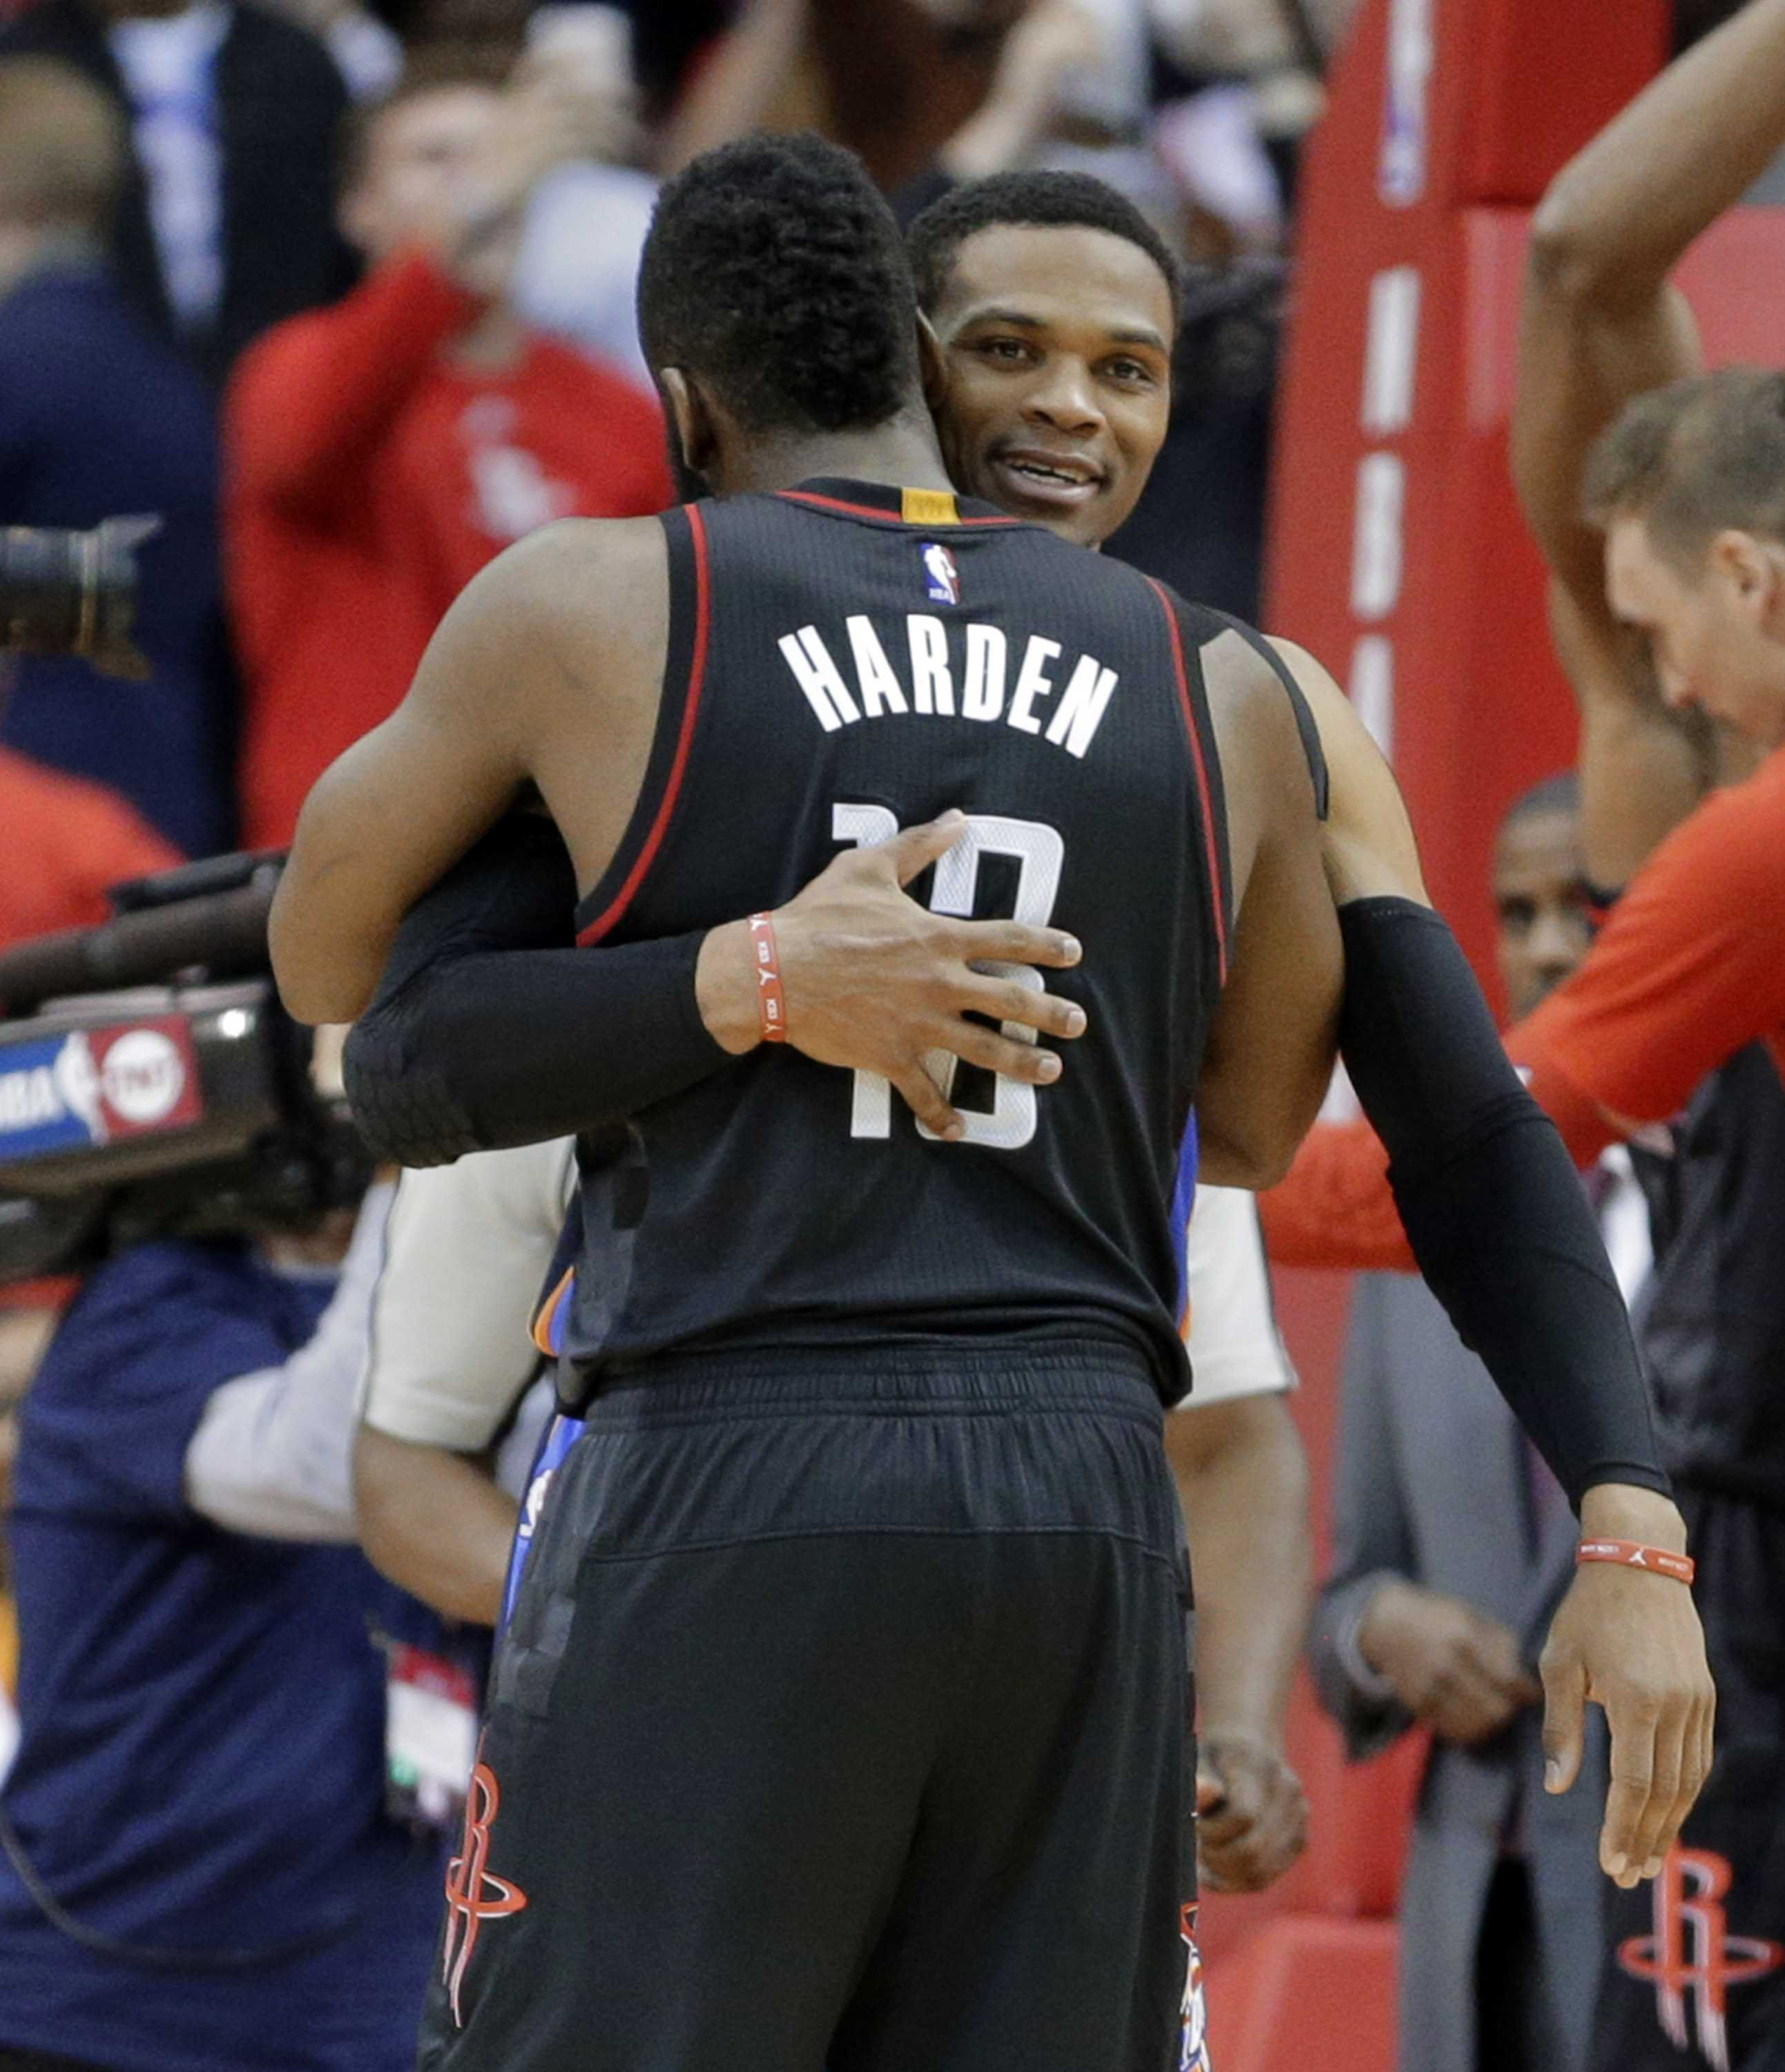 Houston Rockets' James Harden (13) hugs his former teammate, Oklahoma City Thunder's Russell Westbrook after an NBA basketball game in Houston, Thursday Jan. 5, 2017. The Rockets defeated the Thunder 118-116. (AP Photo/Michael Wyke)